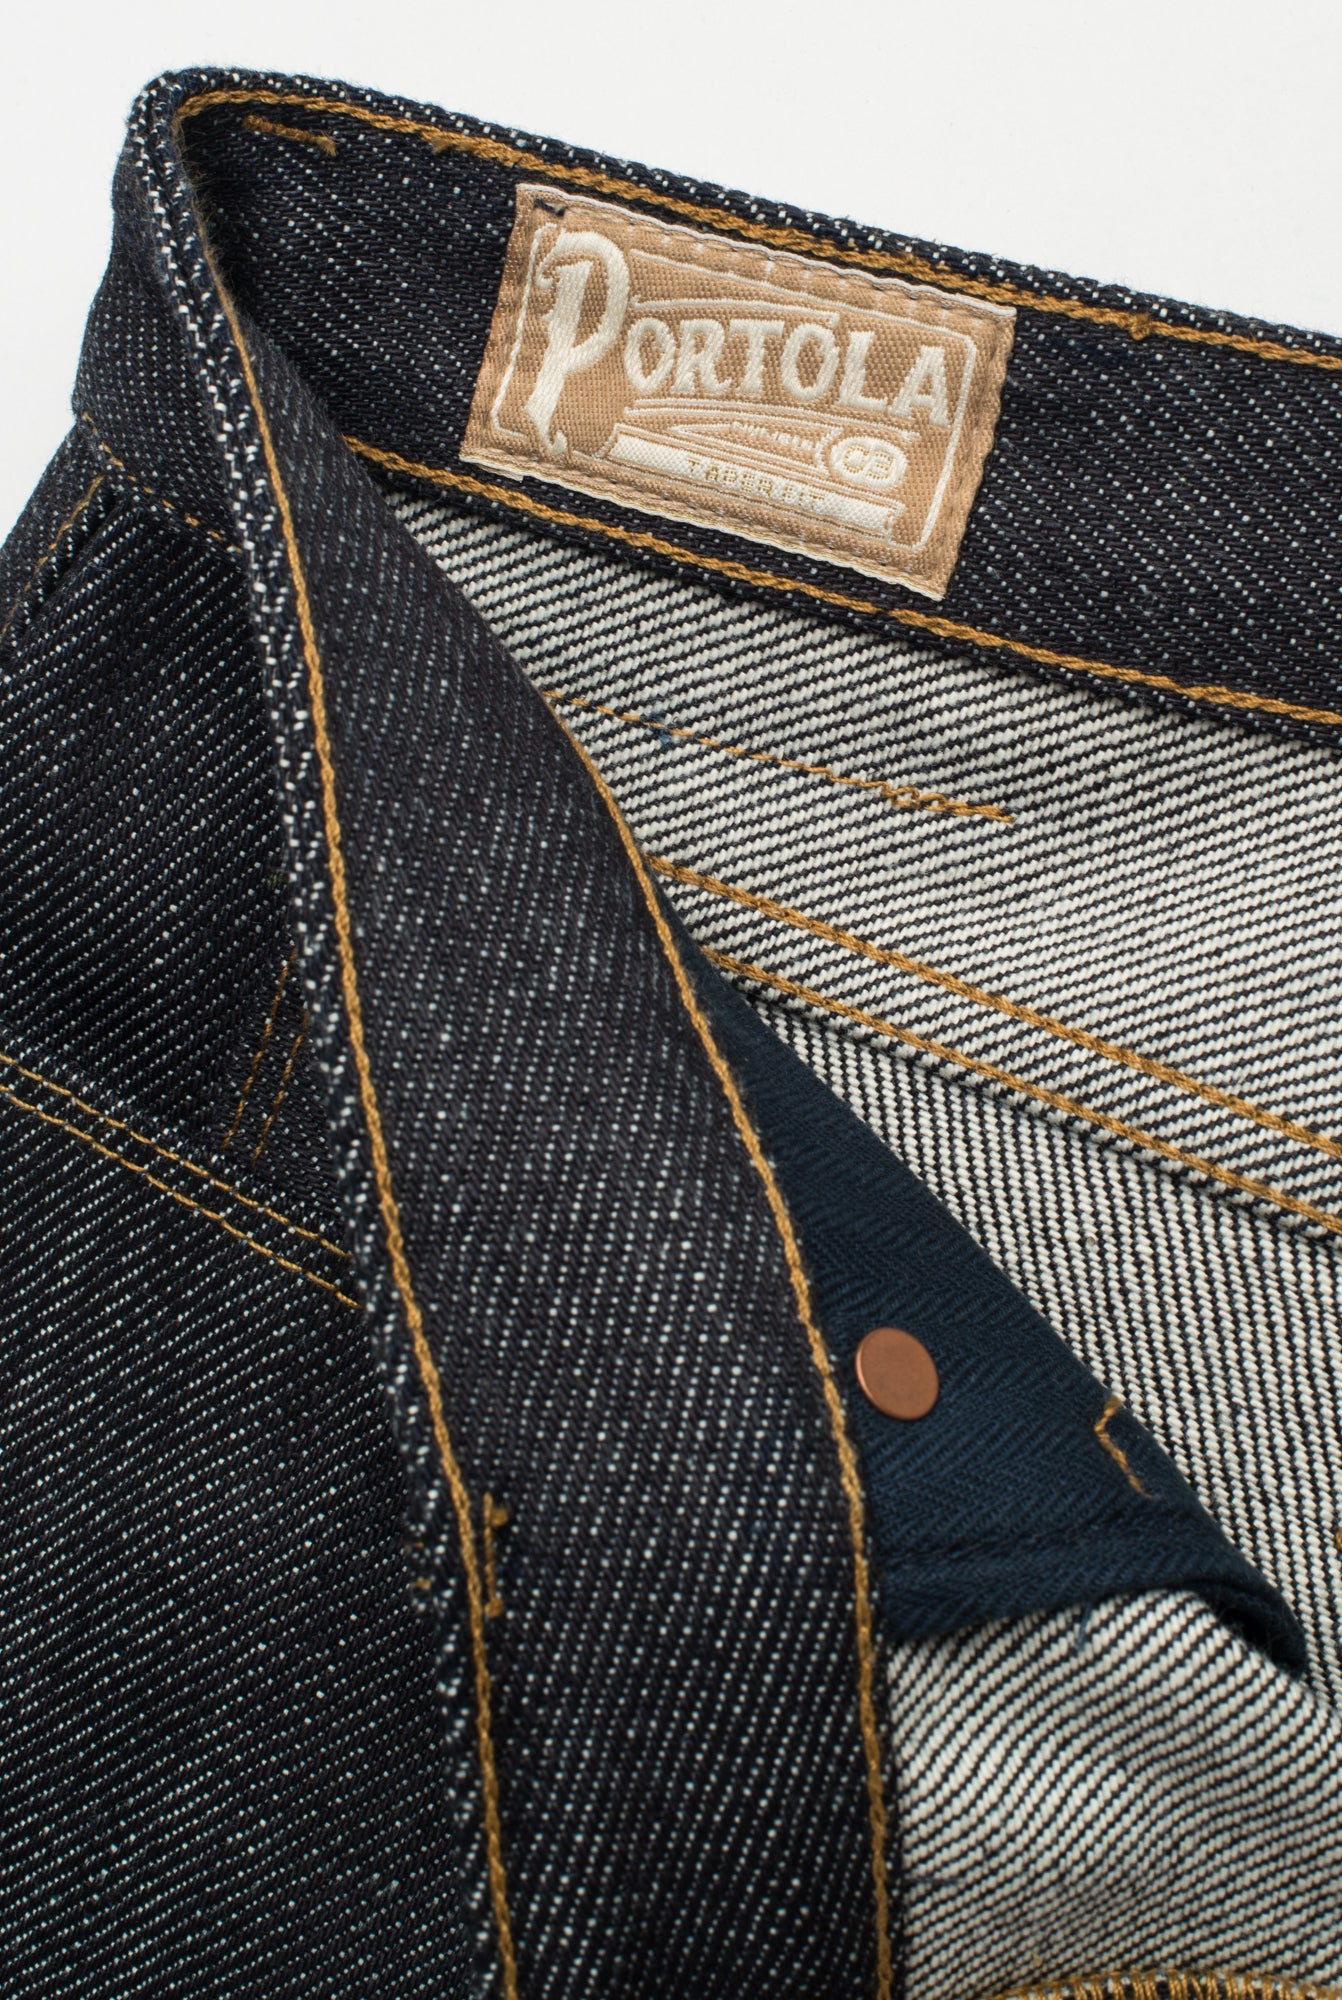 Portola Taper Raw 20 oz Japanese Denim tag